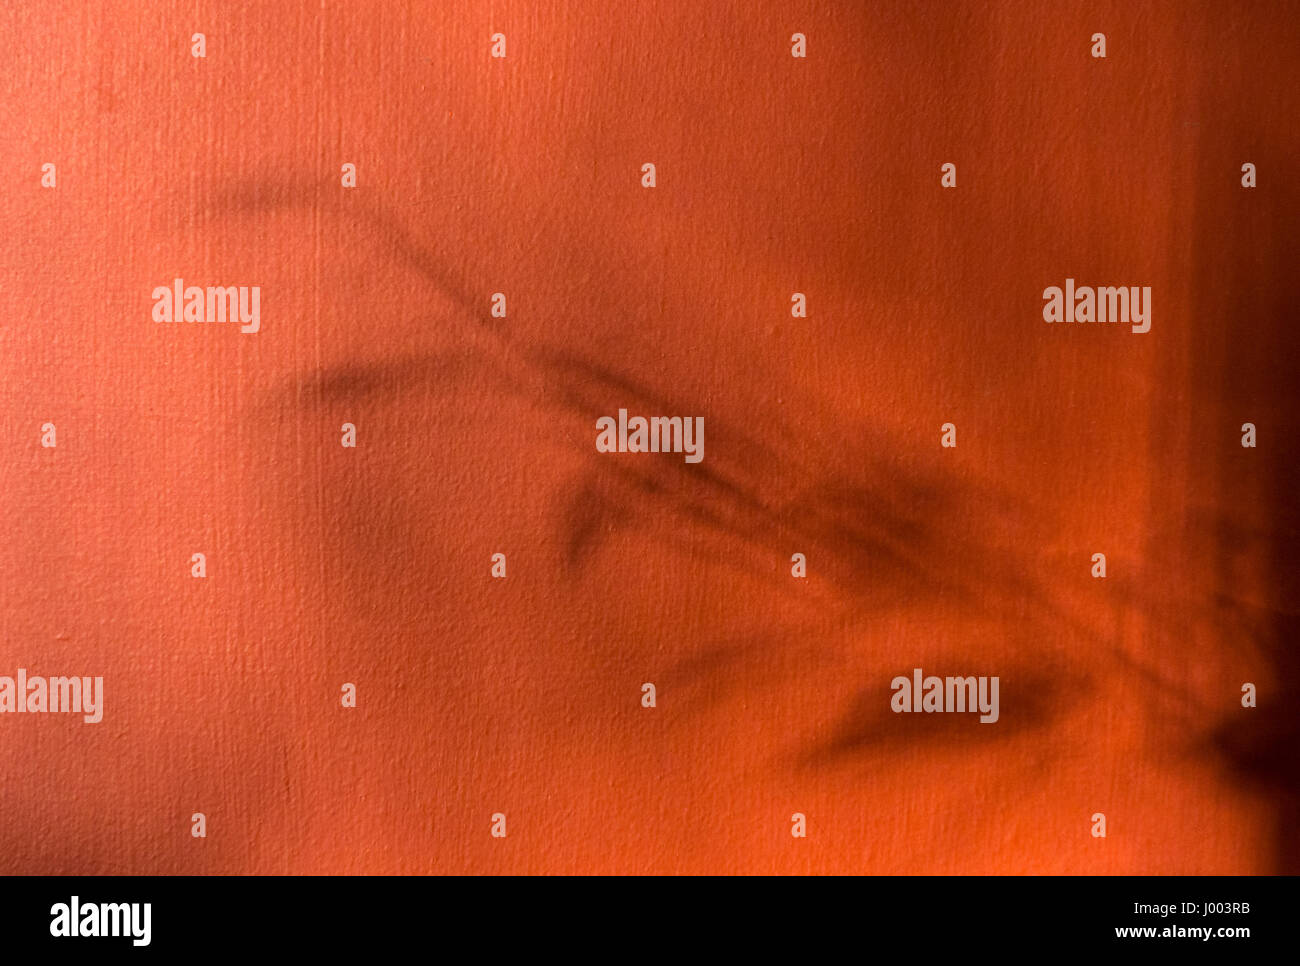 Abstract photo of a plants leaves and stem as shadows on an ochre wall - Stock Image